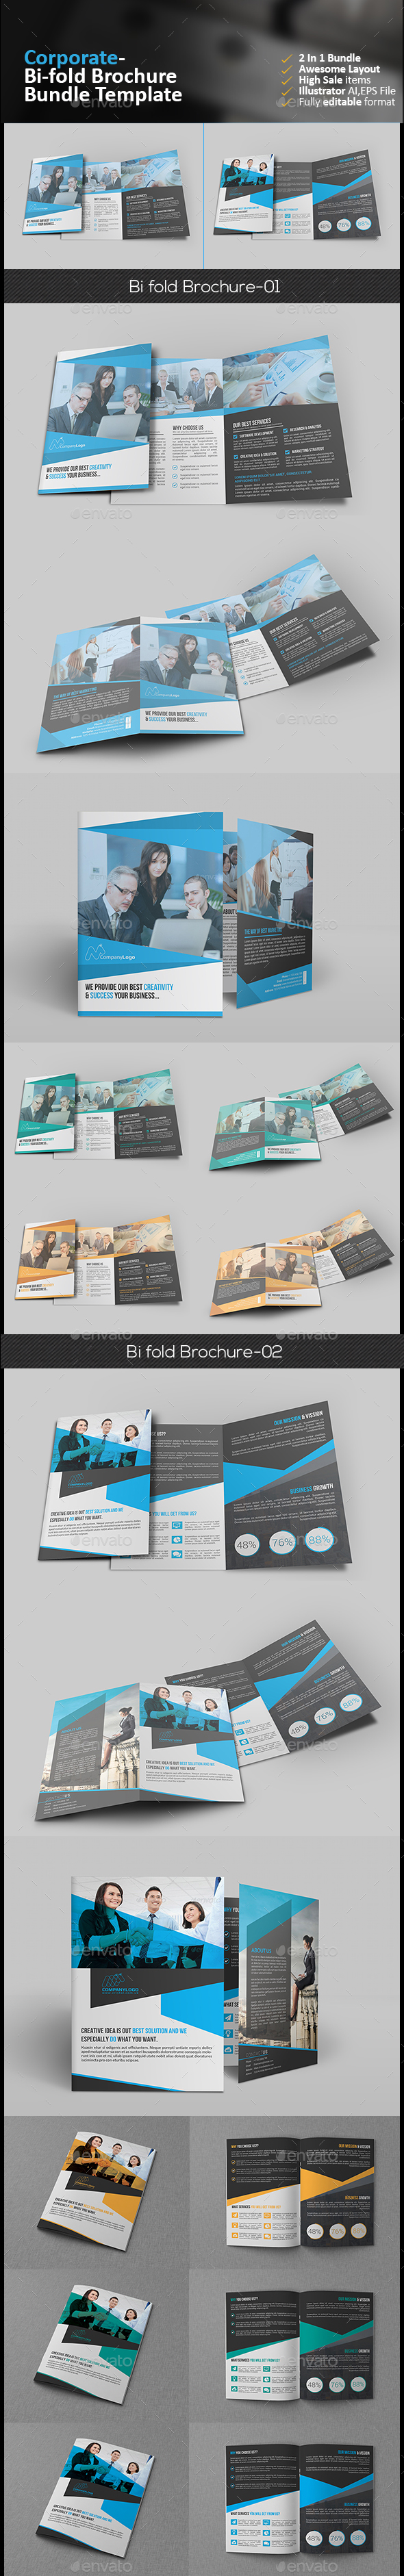 Bi Fold Brochure Bundle - Corporate Brochures